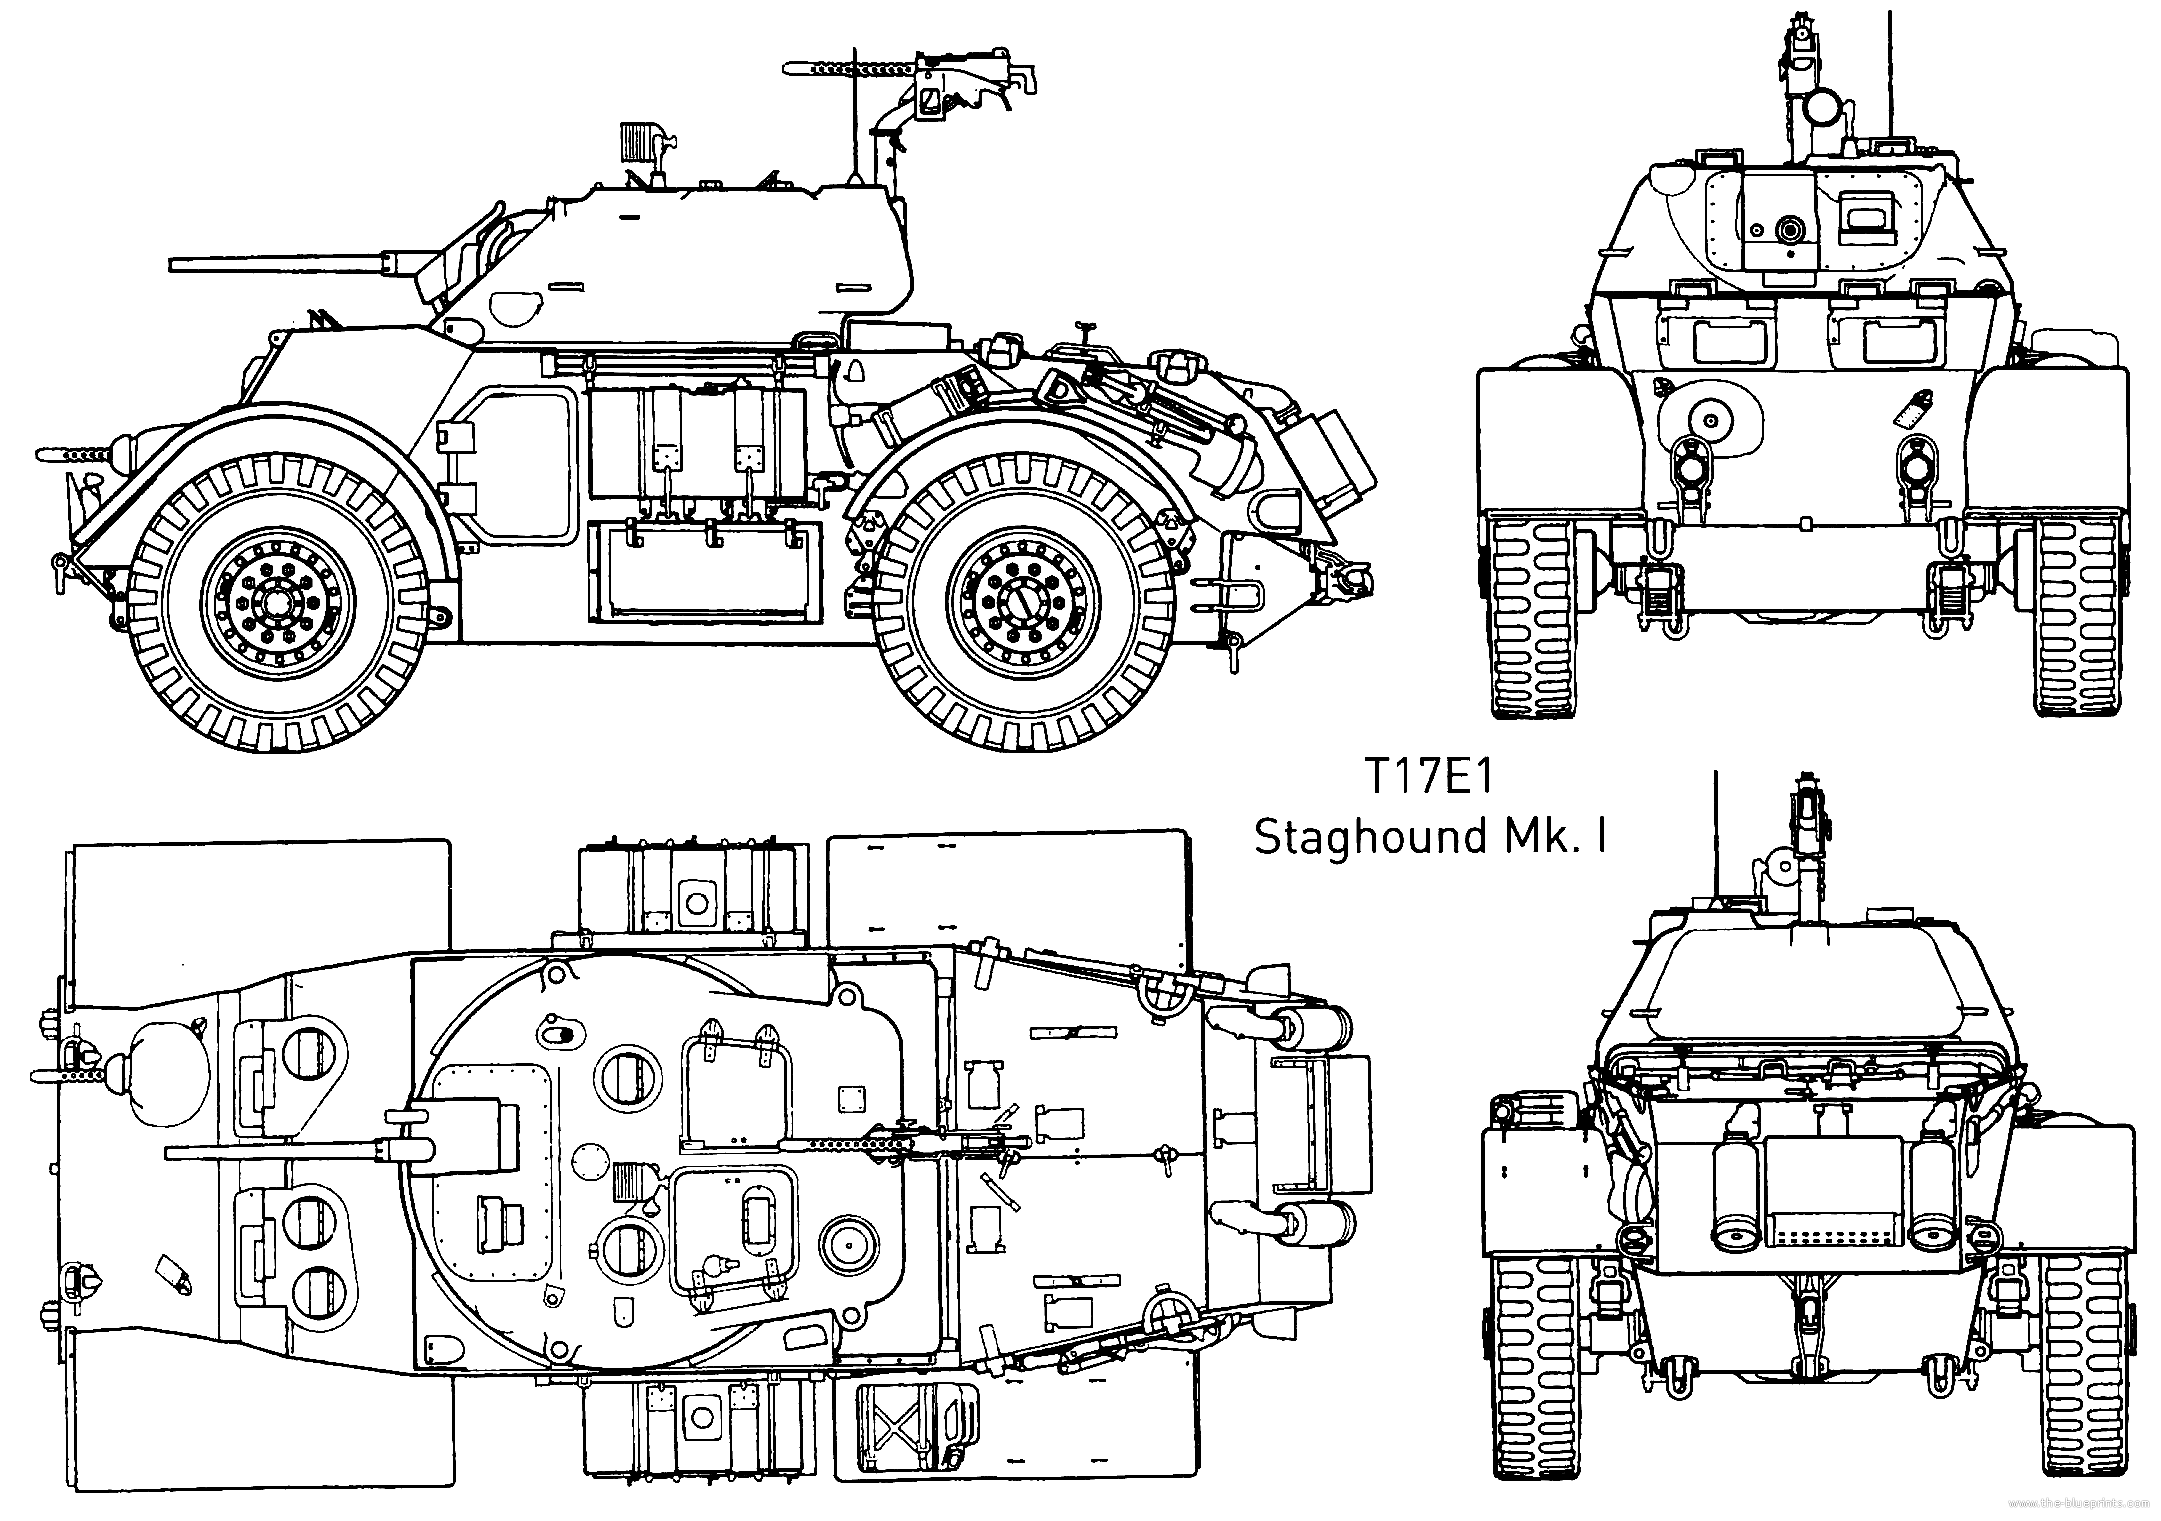 t17e1-staghound-mki-5.png (2161×1521)